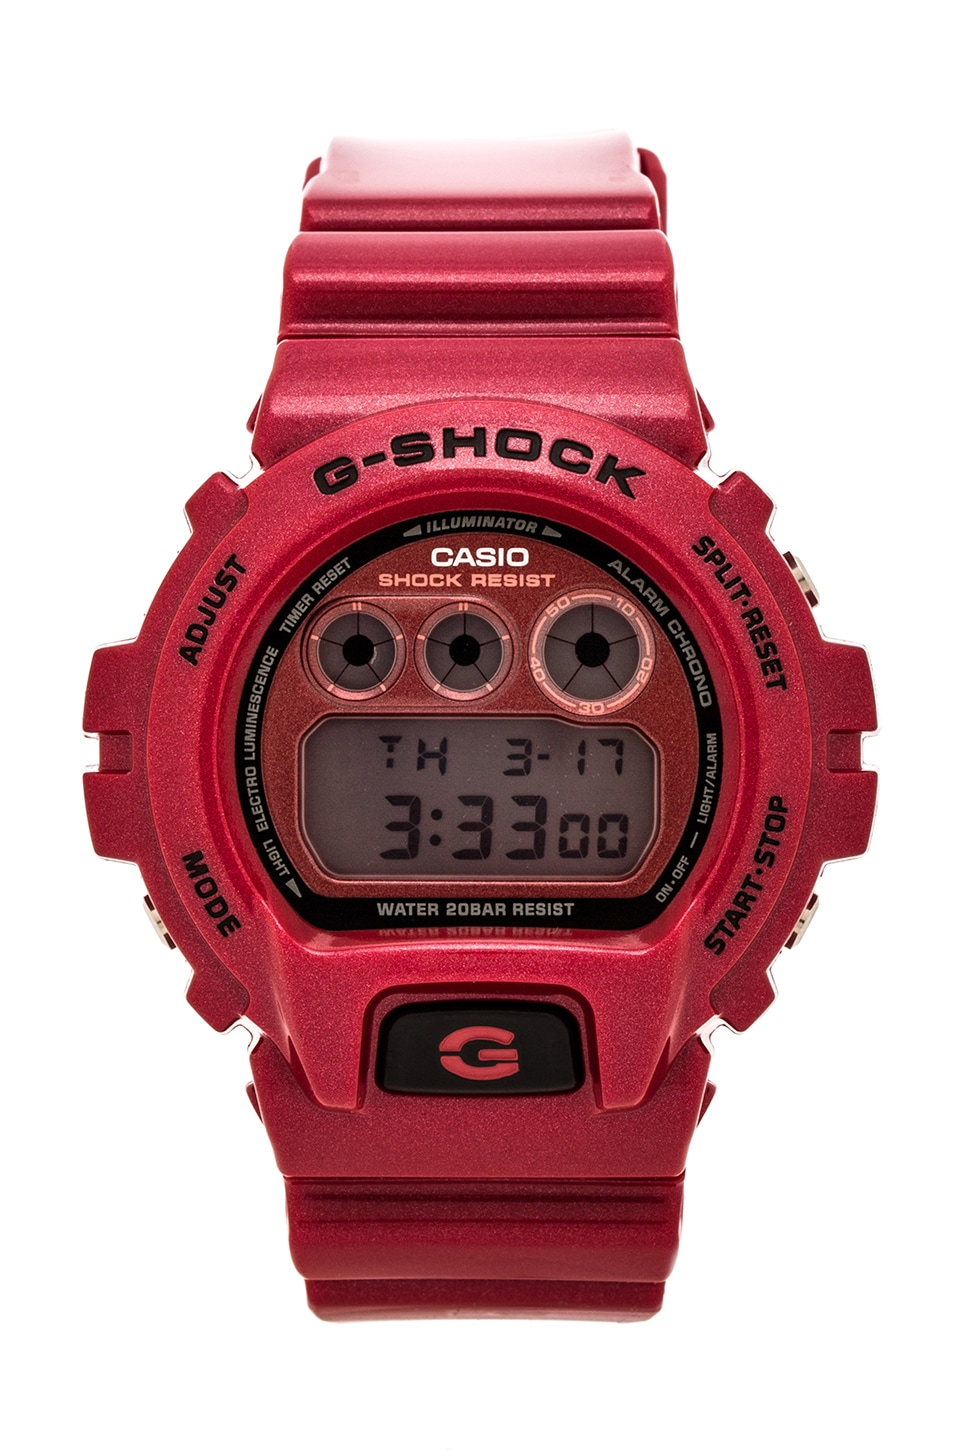 G-Shock DW-6900MF-4 in Resin Red